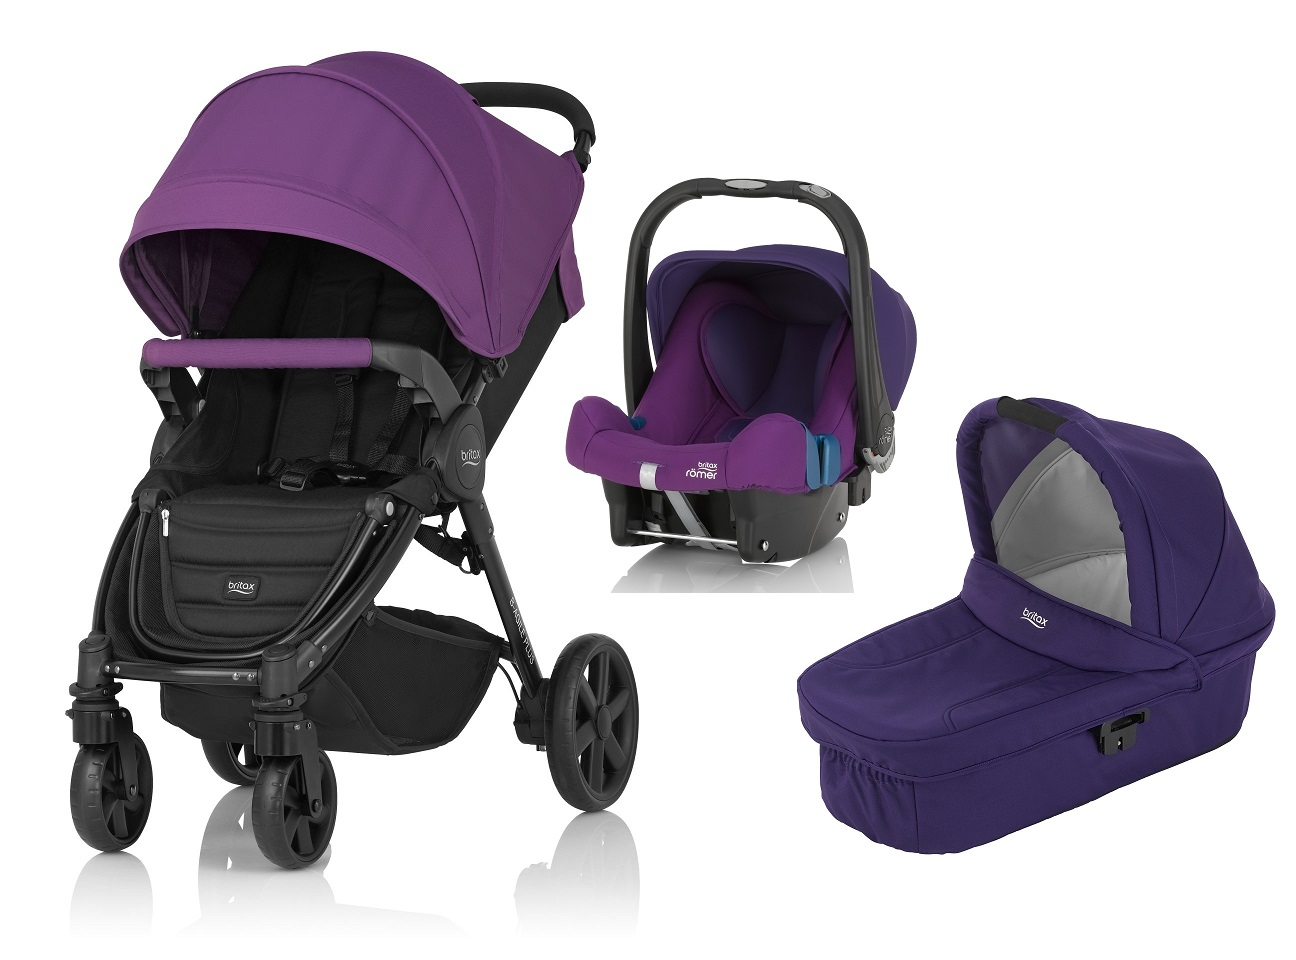 britax b-agile 4 plus incl. canopy pack + carrycot + infant